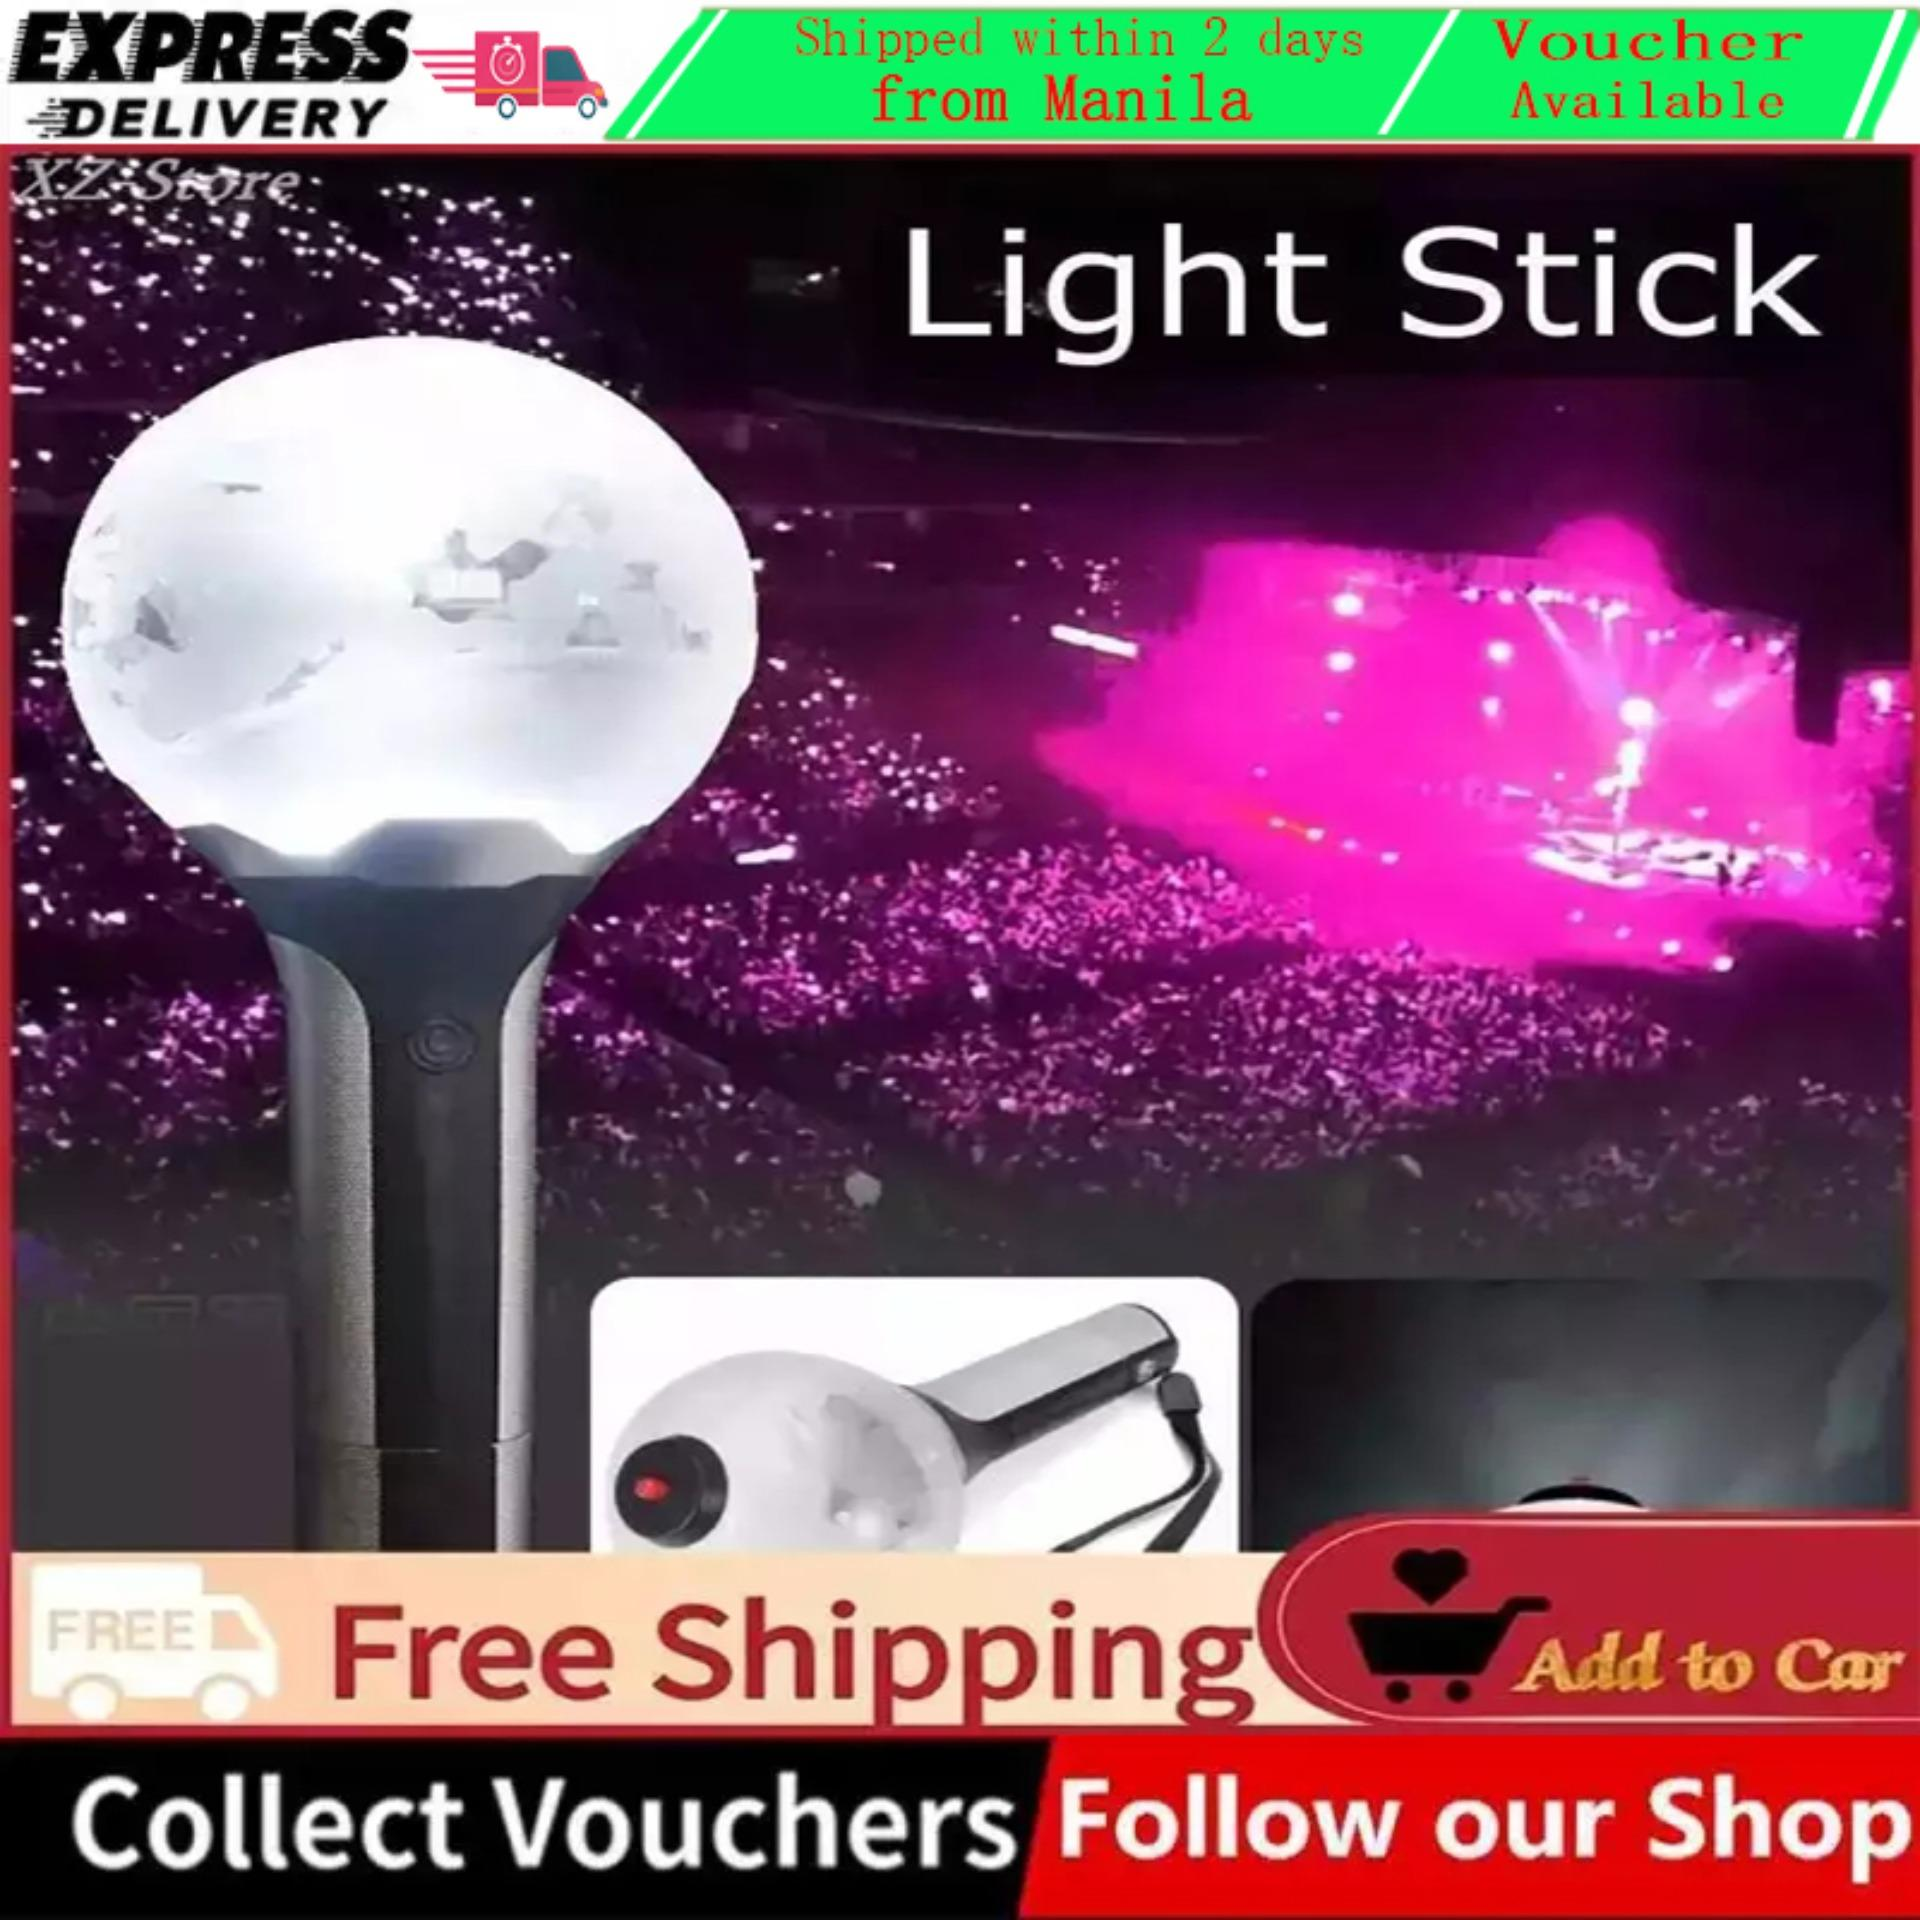 [Ready Stock] KPOP BTS ARMY Bomb Light Stick Bangtan Boys Group Concert  Lamp Lightstick Hot - intl